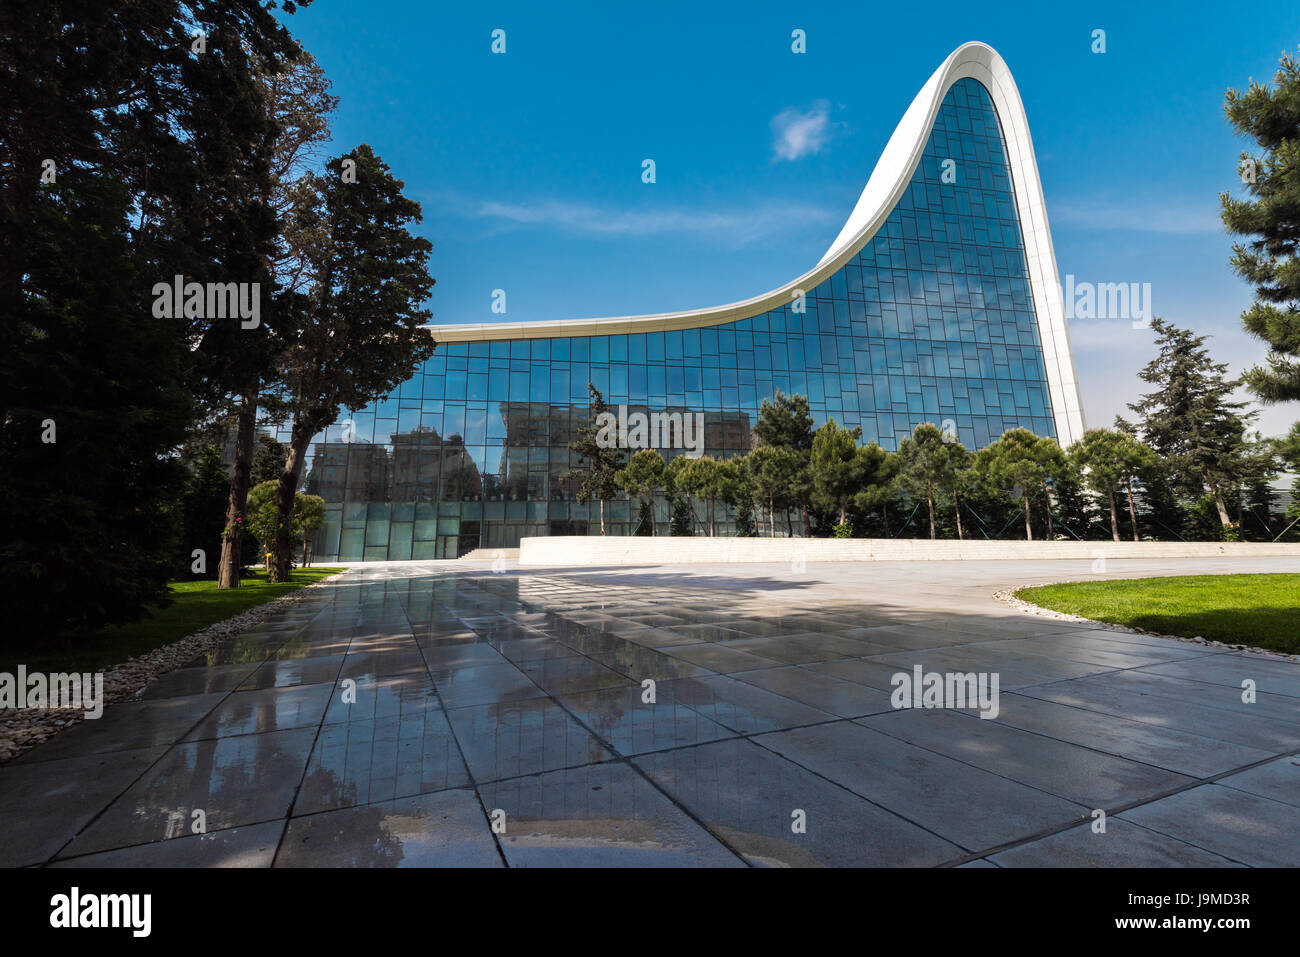 famous architecture in the world. Azerbaijan, Baku, May 20, 2017. Heydar Aliyev Center Building With Auditorium, Gallery Hall And Museum. Designed By World-famous Architect Zaha Hadid. Famous Architecture In The World B